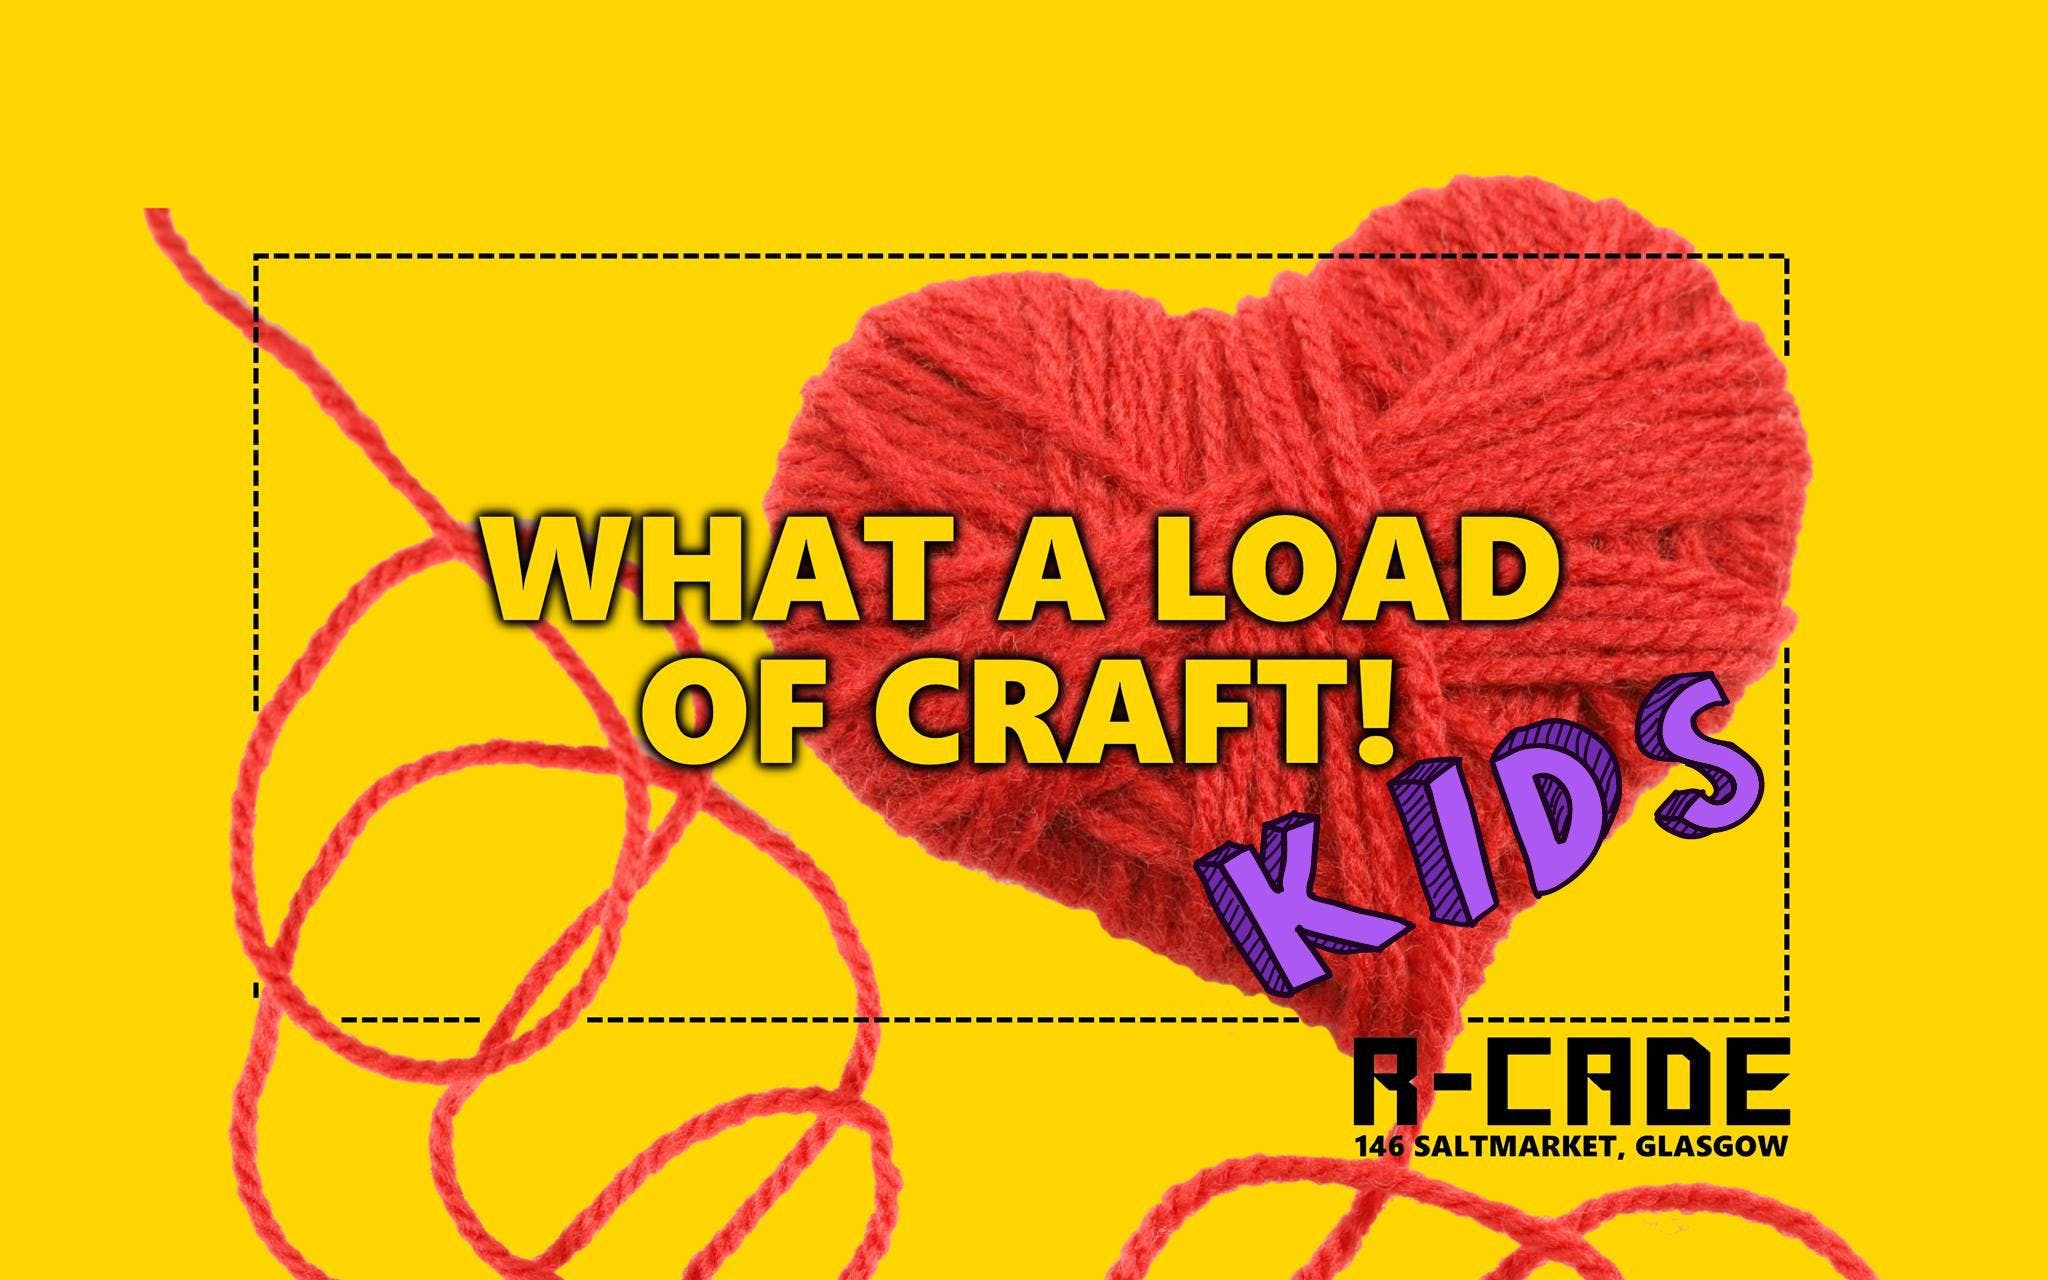 What A Load of Craft Kids!